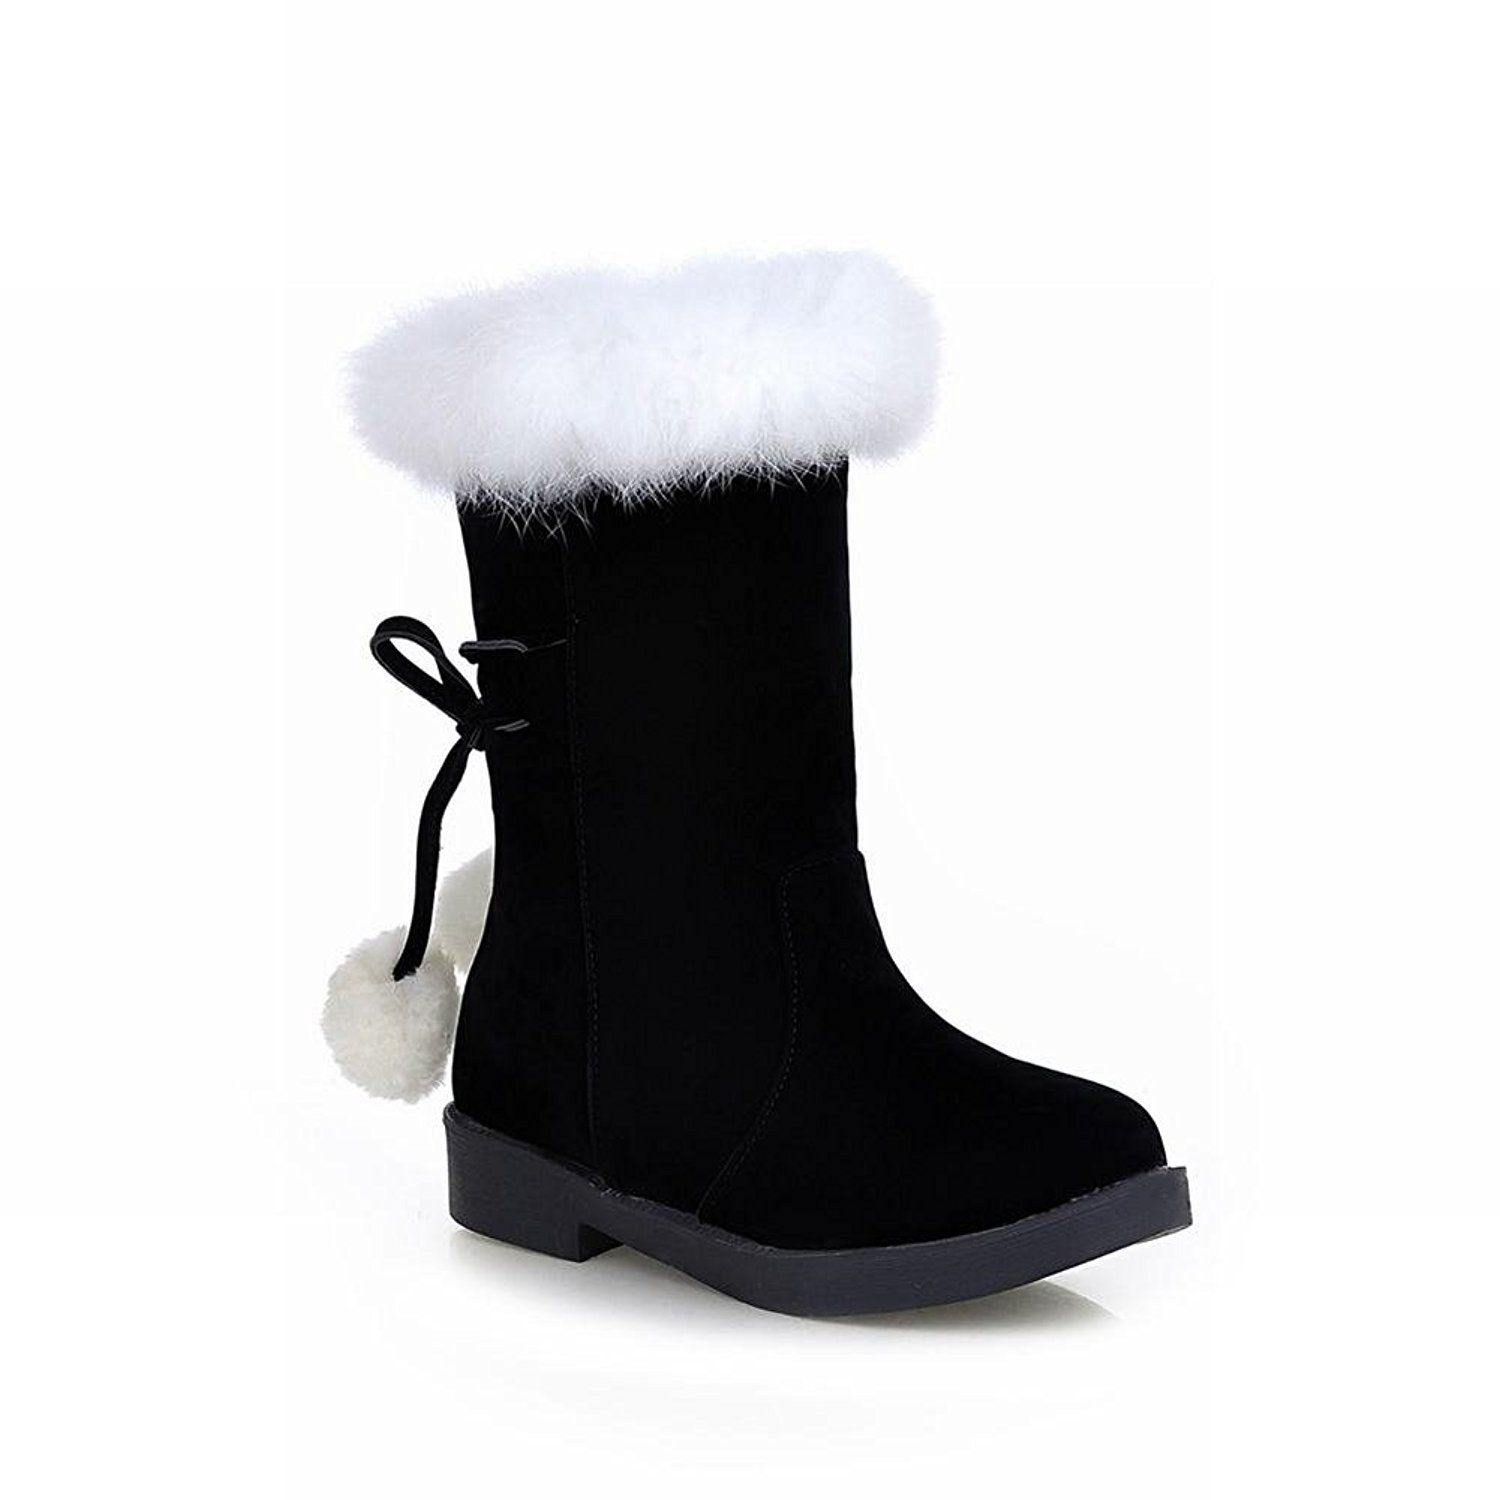 0daba173adb2 Latasa Women s Fashion Nubuck Mid-calf Faux-fur Decorated Snow Boots ...